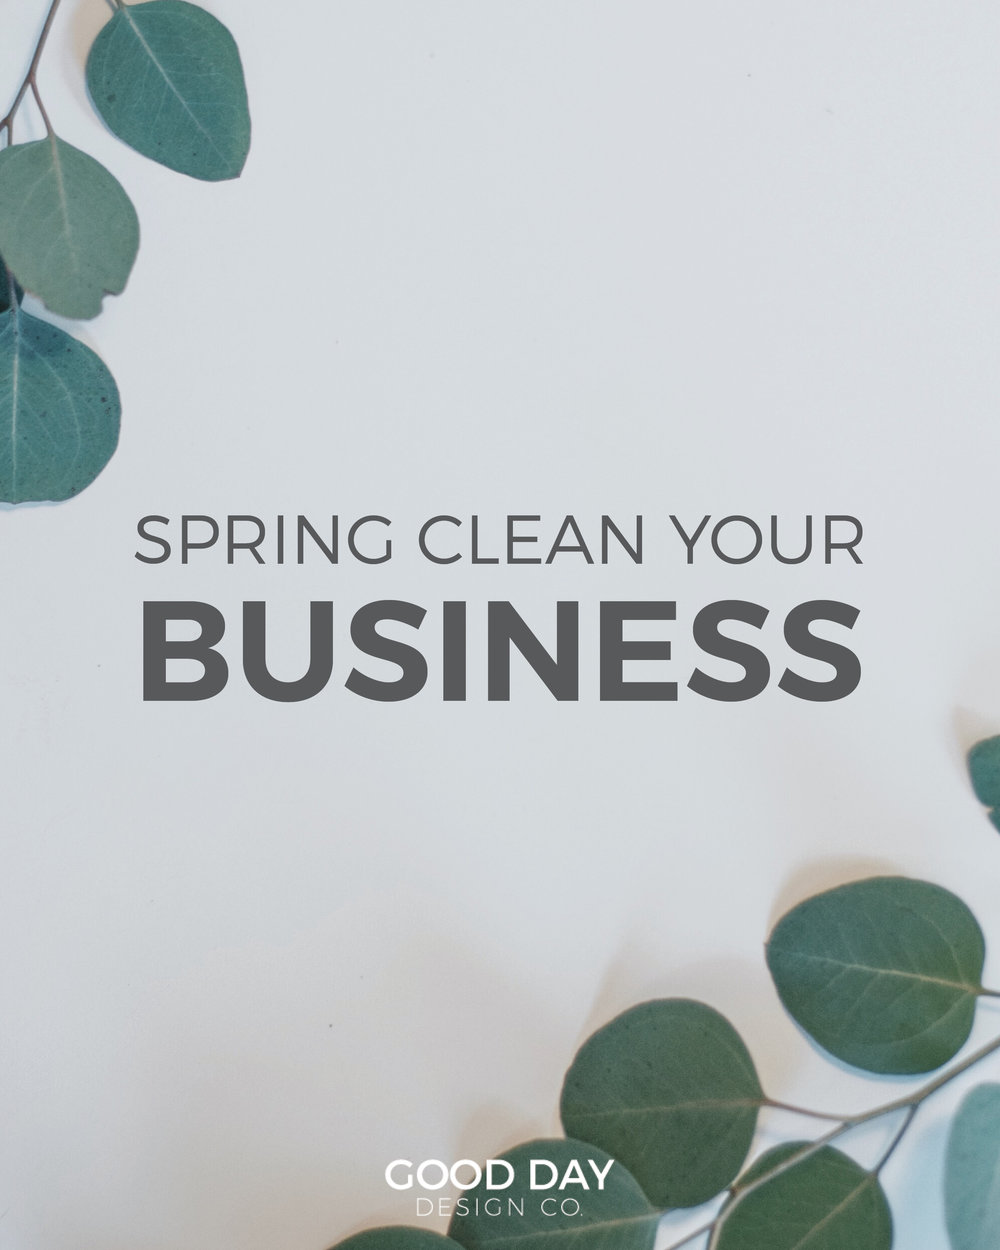 Good Day Design Co. Spring Clean Your Business